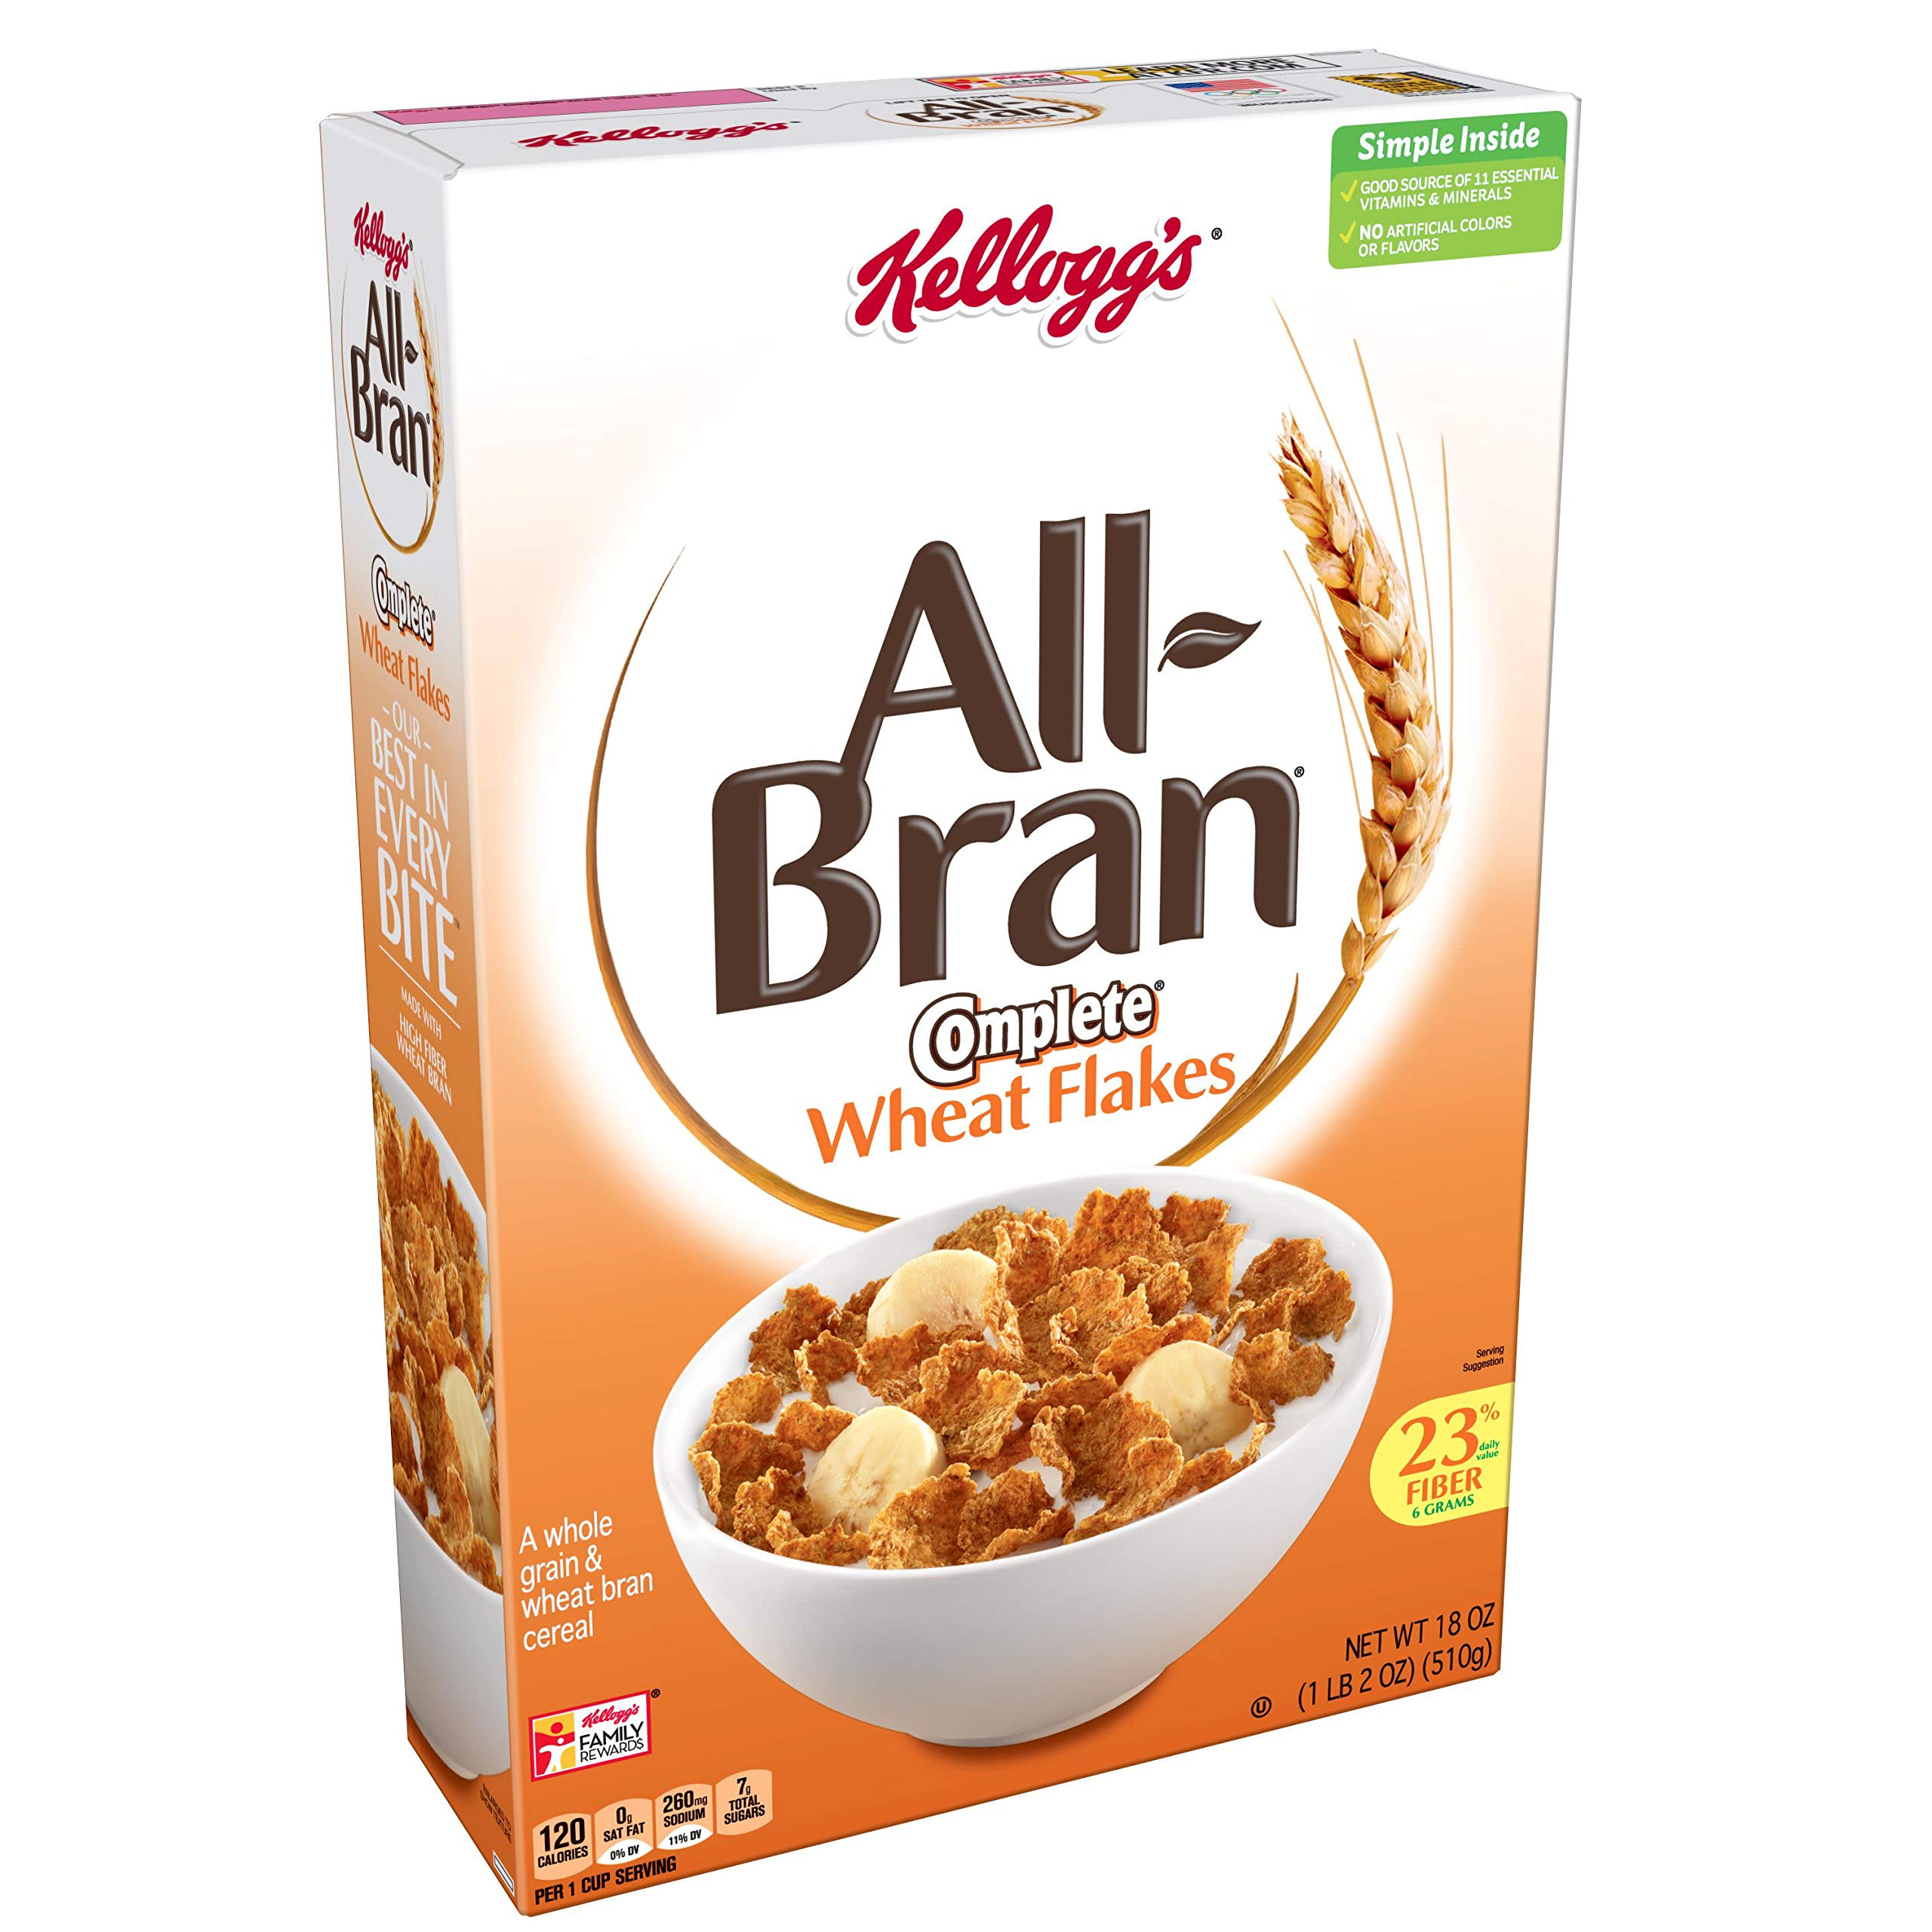 (Discontinued Version) Kellogg's All-Bran Complete Wheat Flakes, Breakfast Cereal, Excellent Source of Fiber, 18 oz Box(Pack of 2)